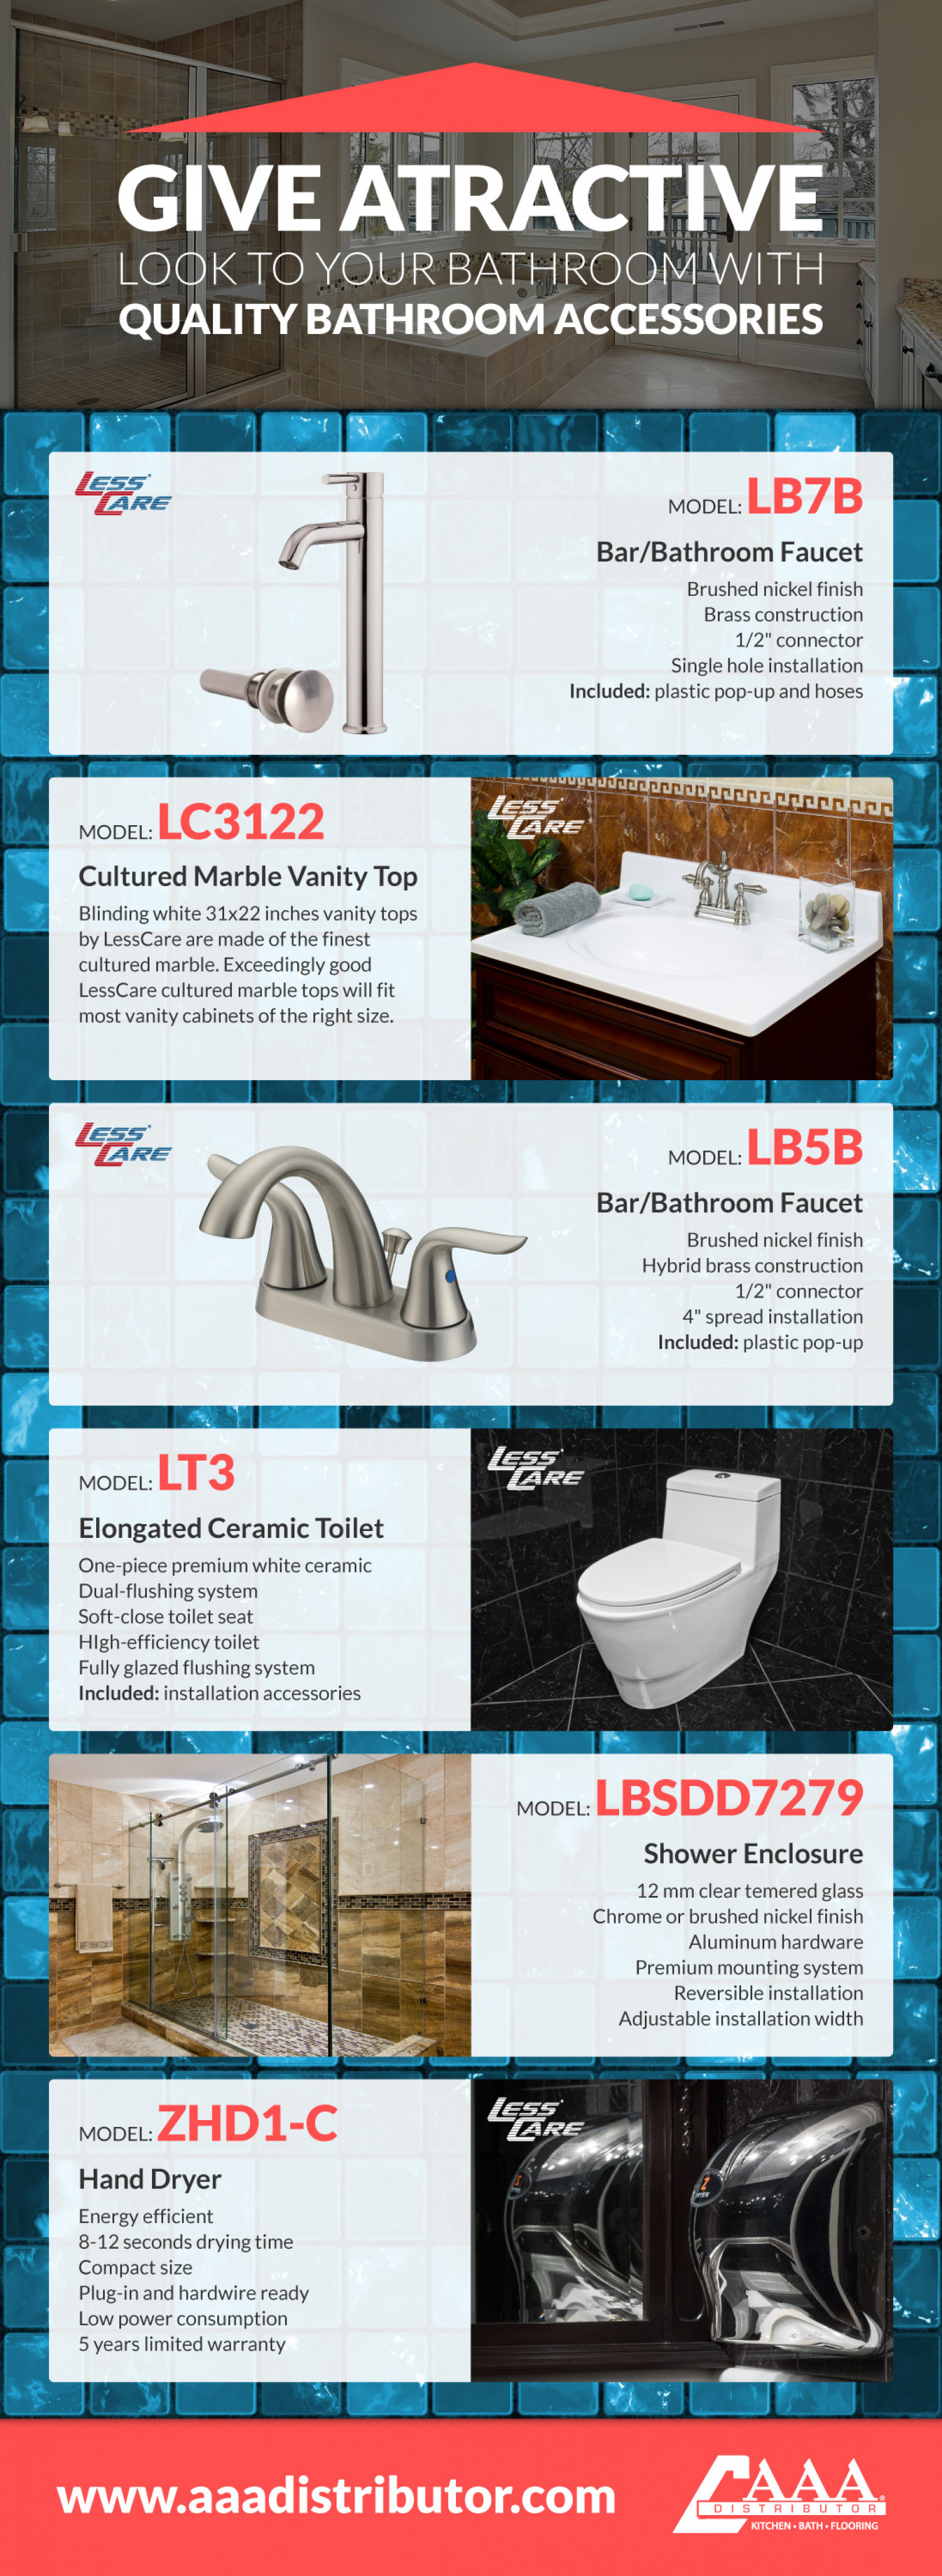 Give Attractive Look to your Bathroom with Quality Bathroom Accessories Infographic